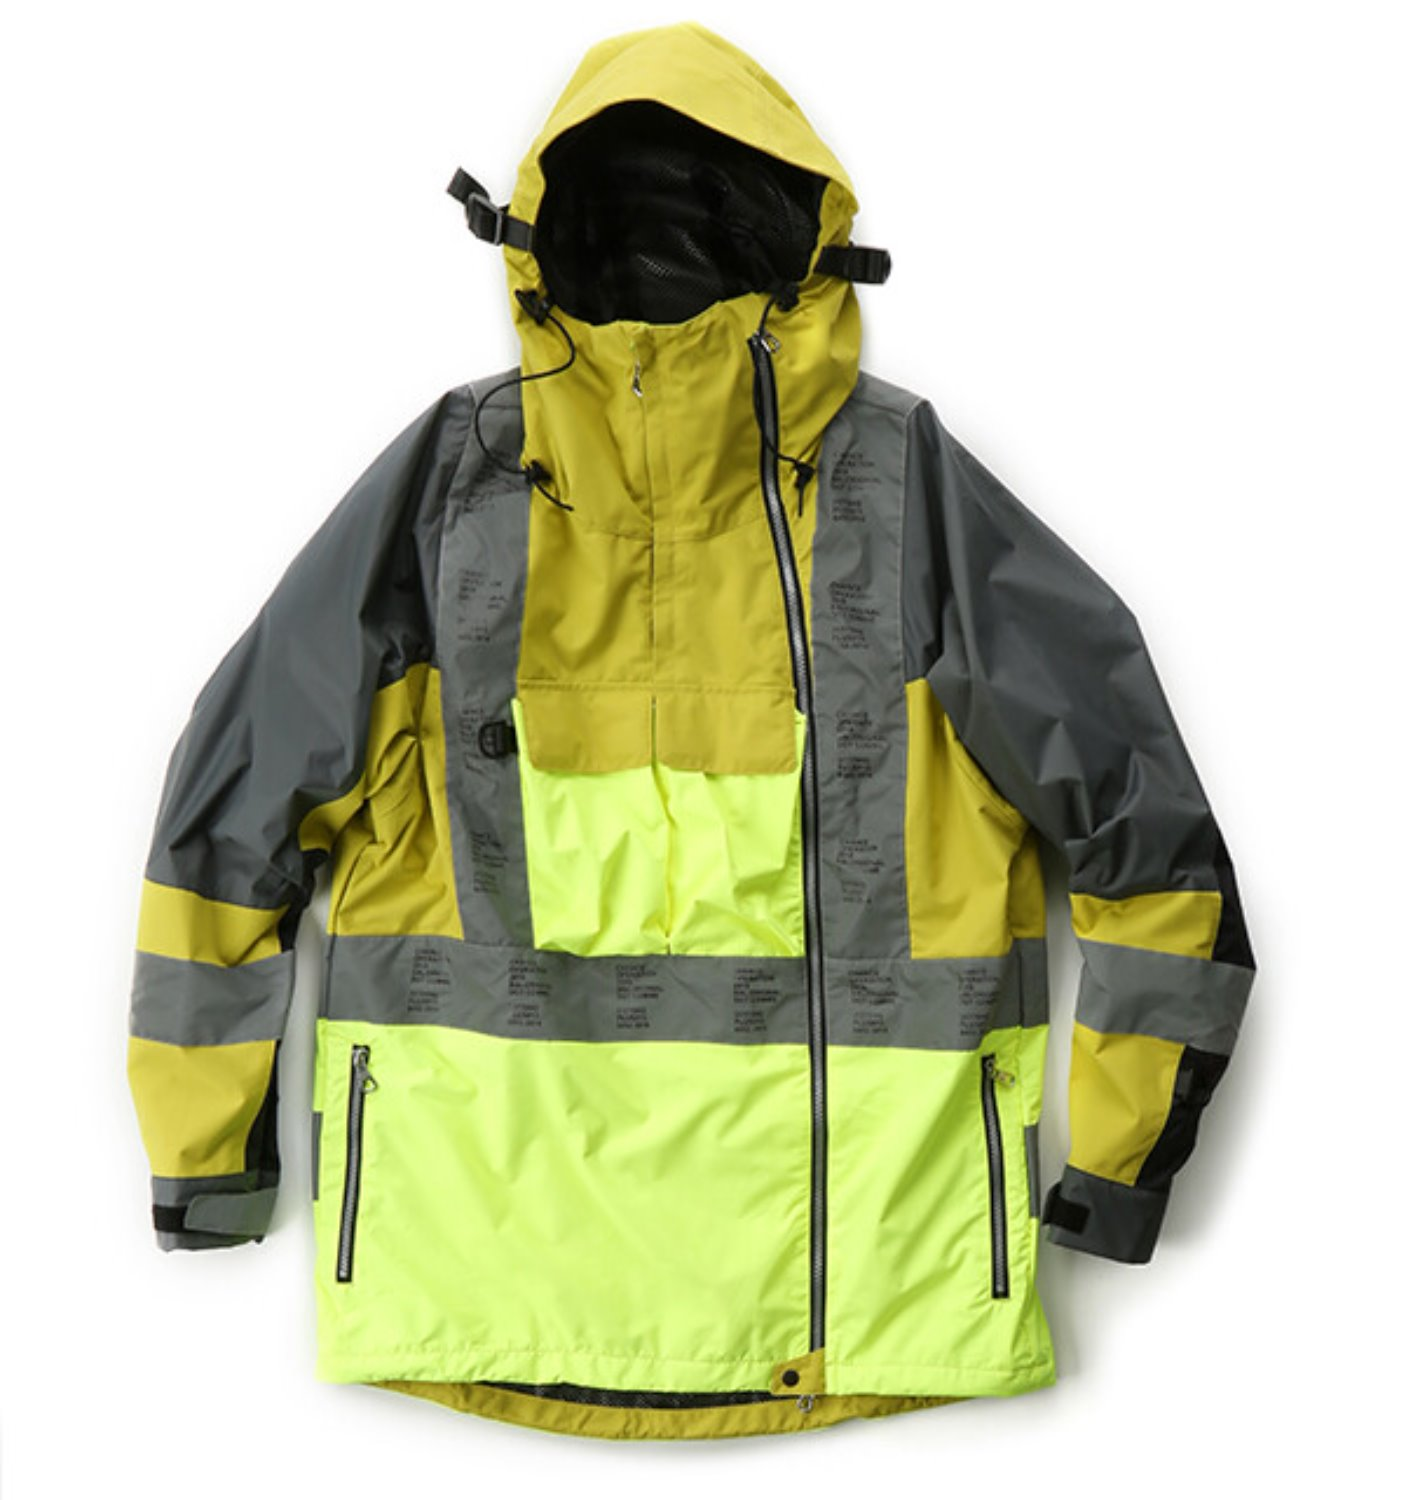 3M TAPED WATER PROOF JACKET LIME